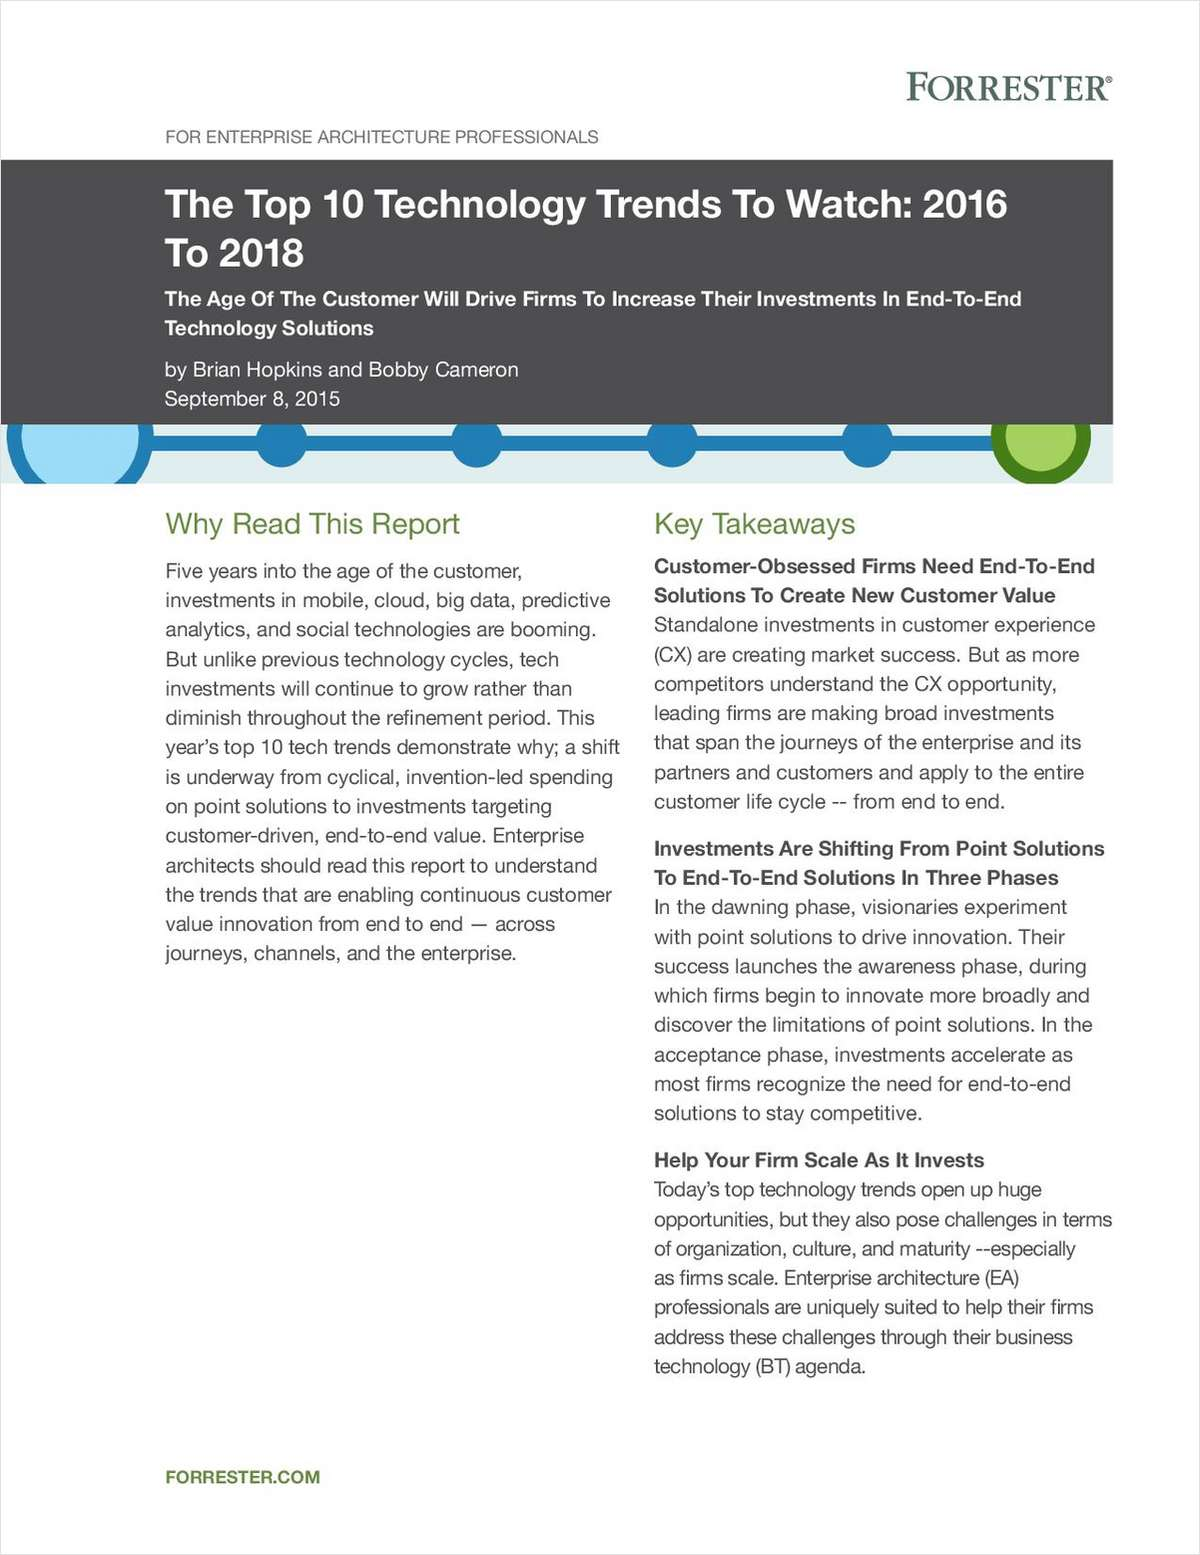 Forrester Top 10 Technology Trends to Watch